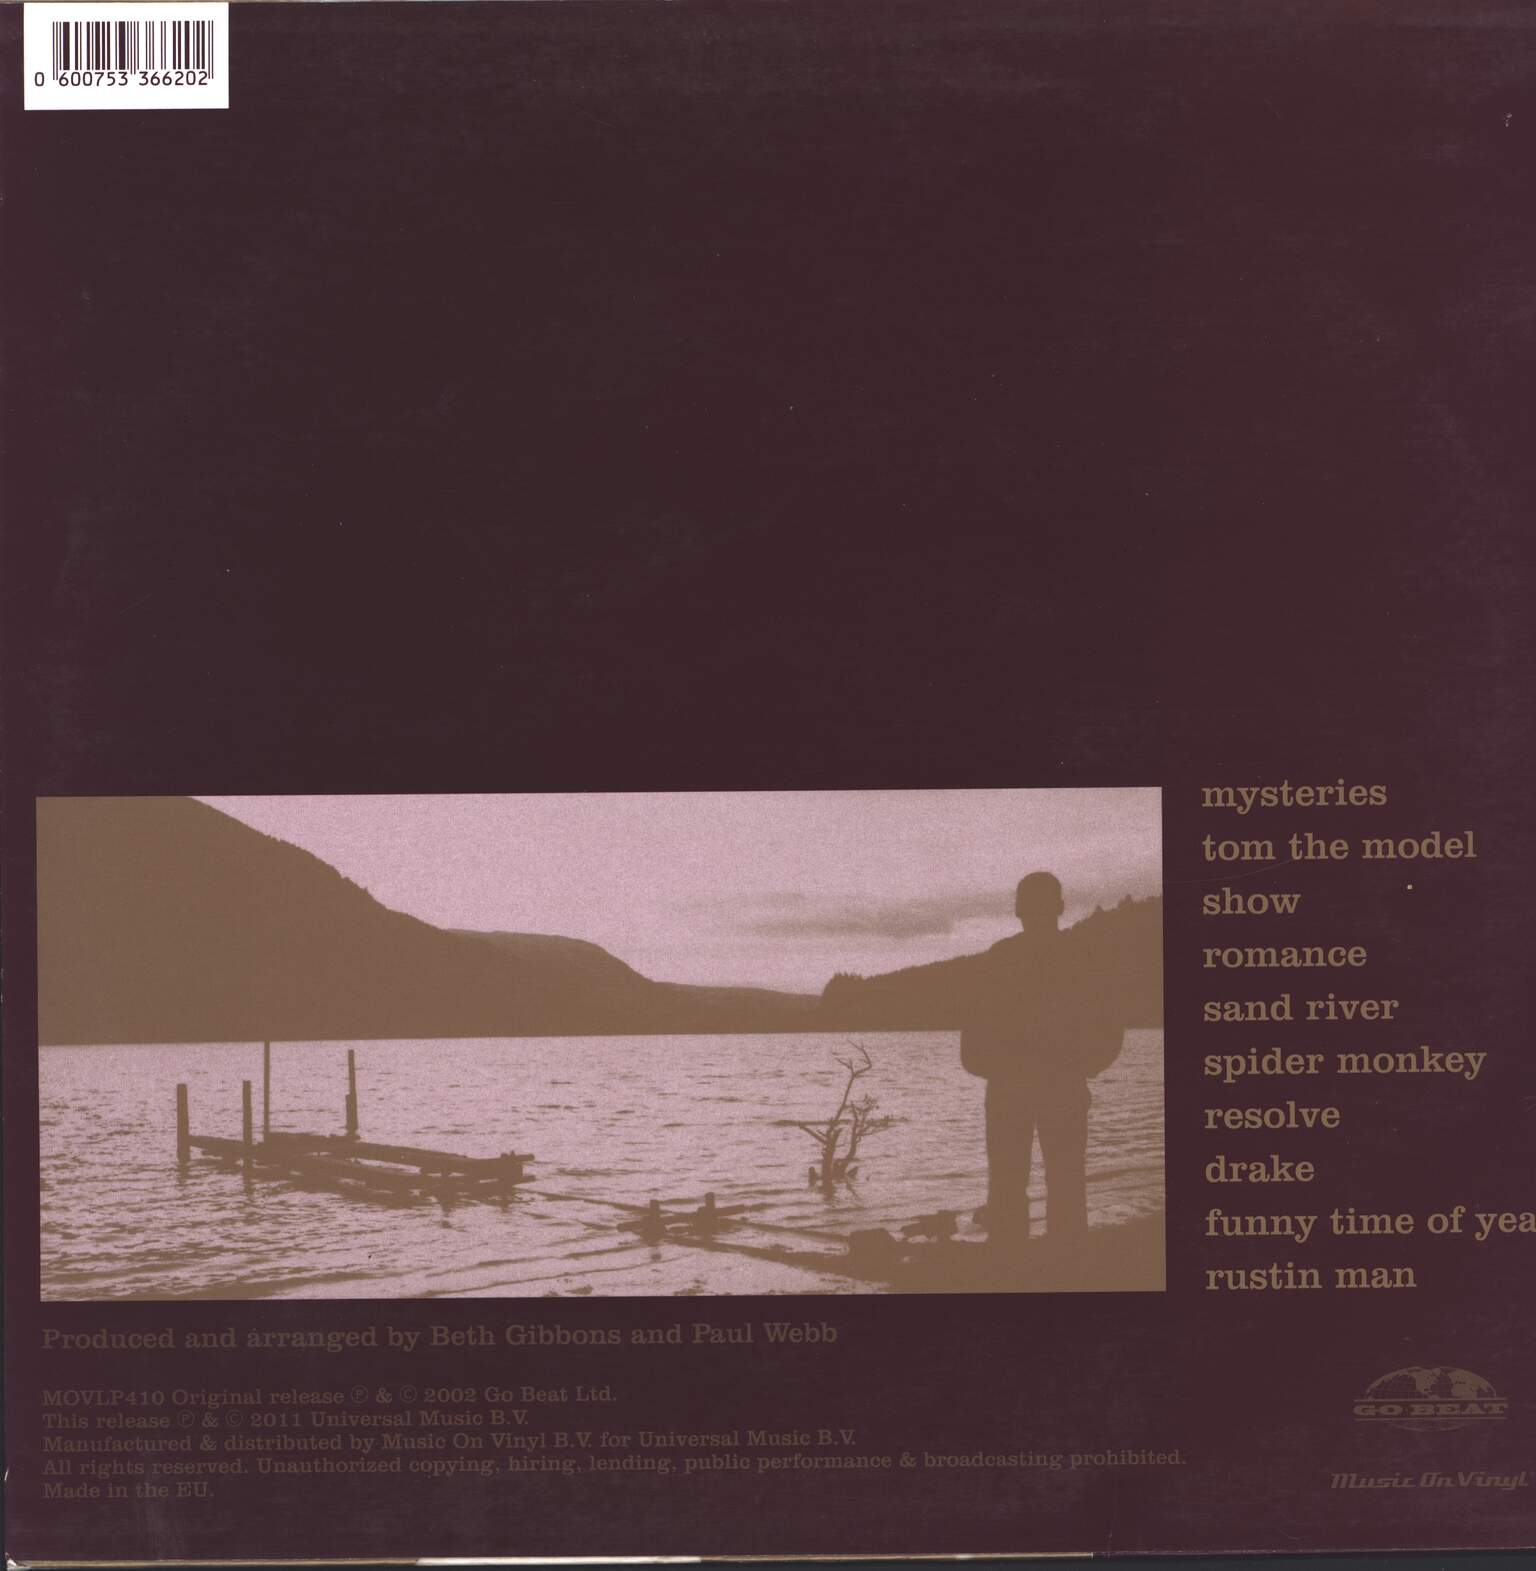 Beth Gibbons: Out Of Season, 1×LP (Vinyl)